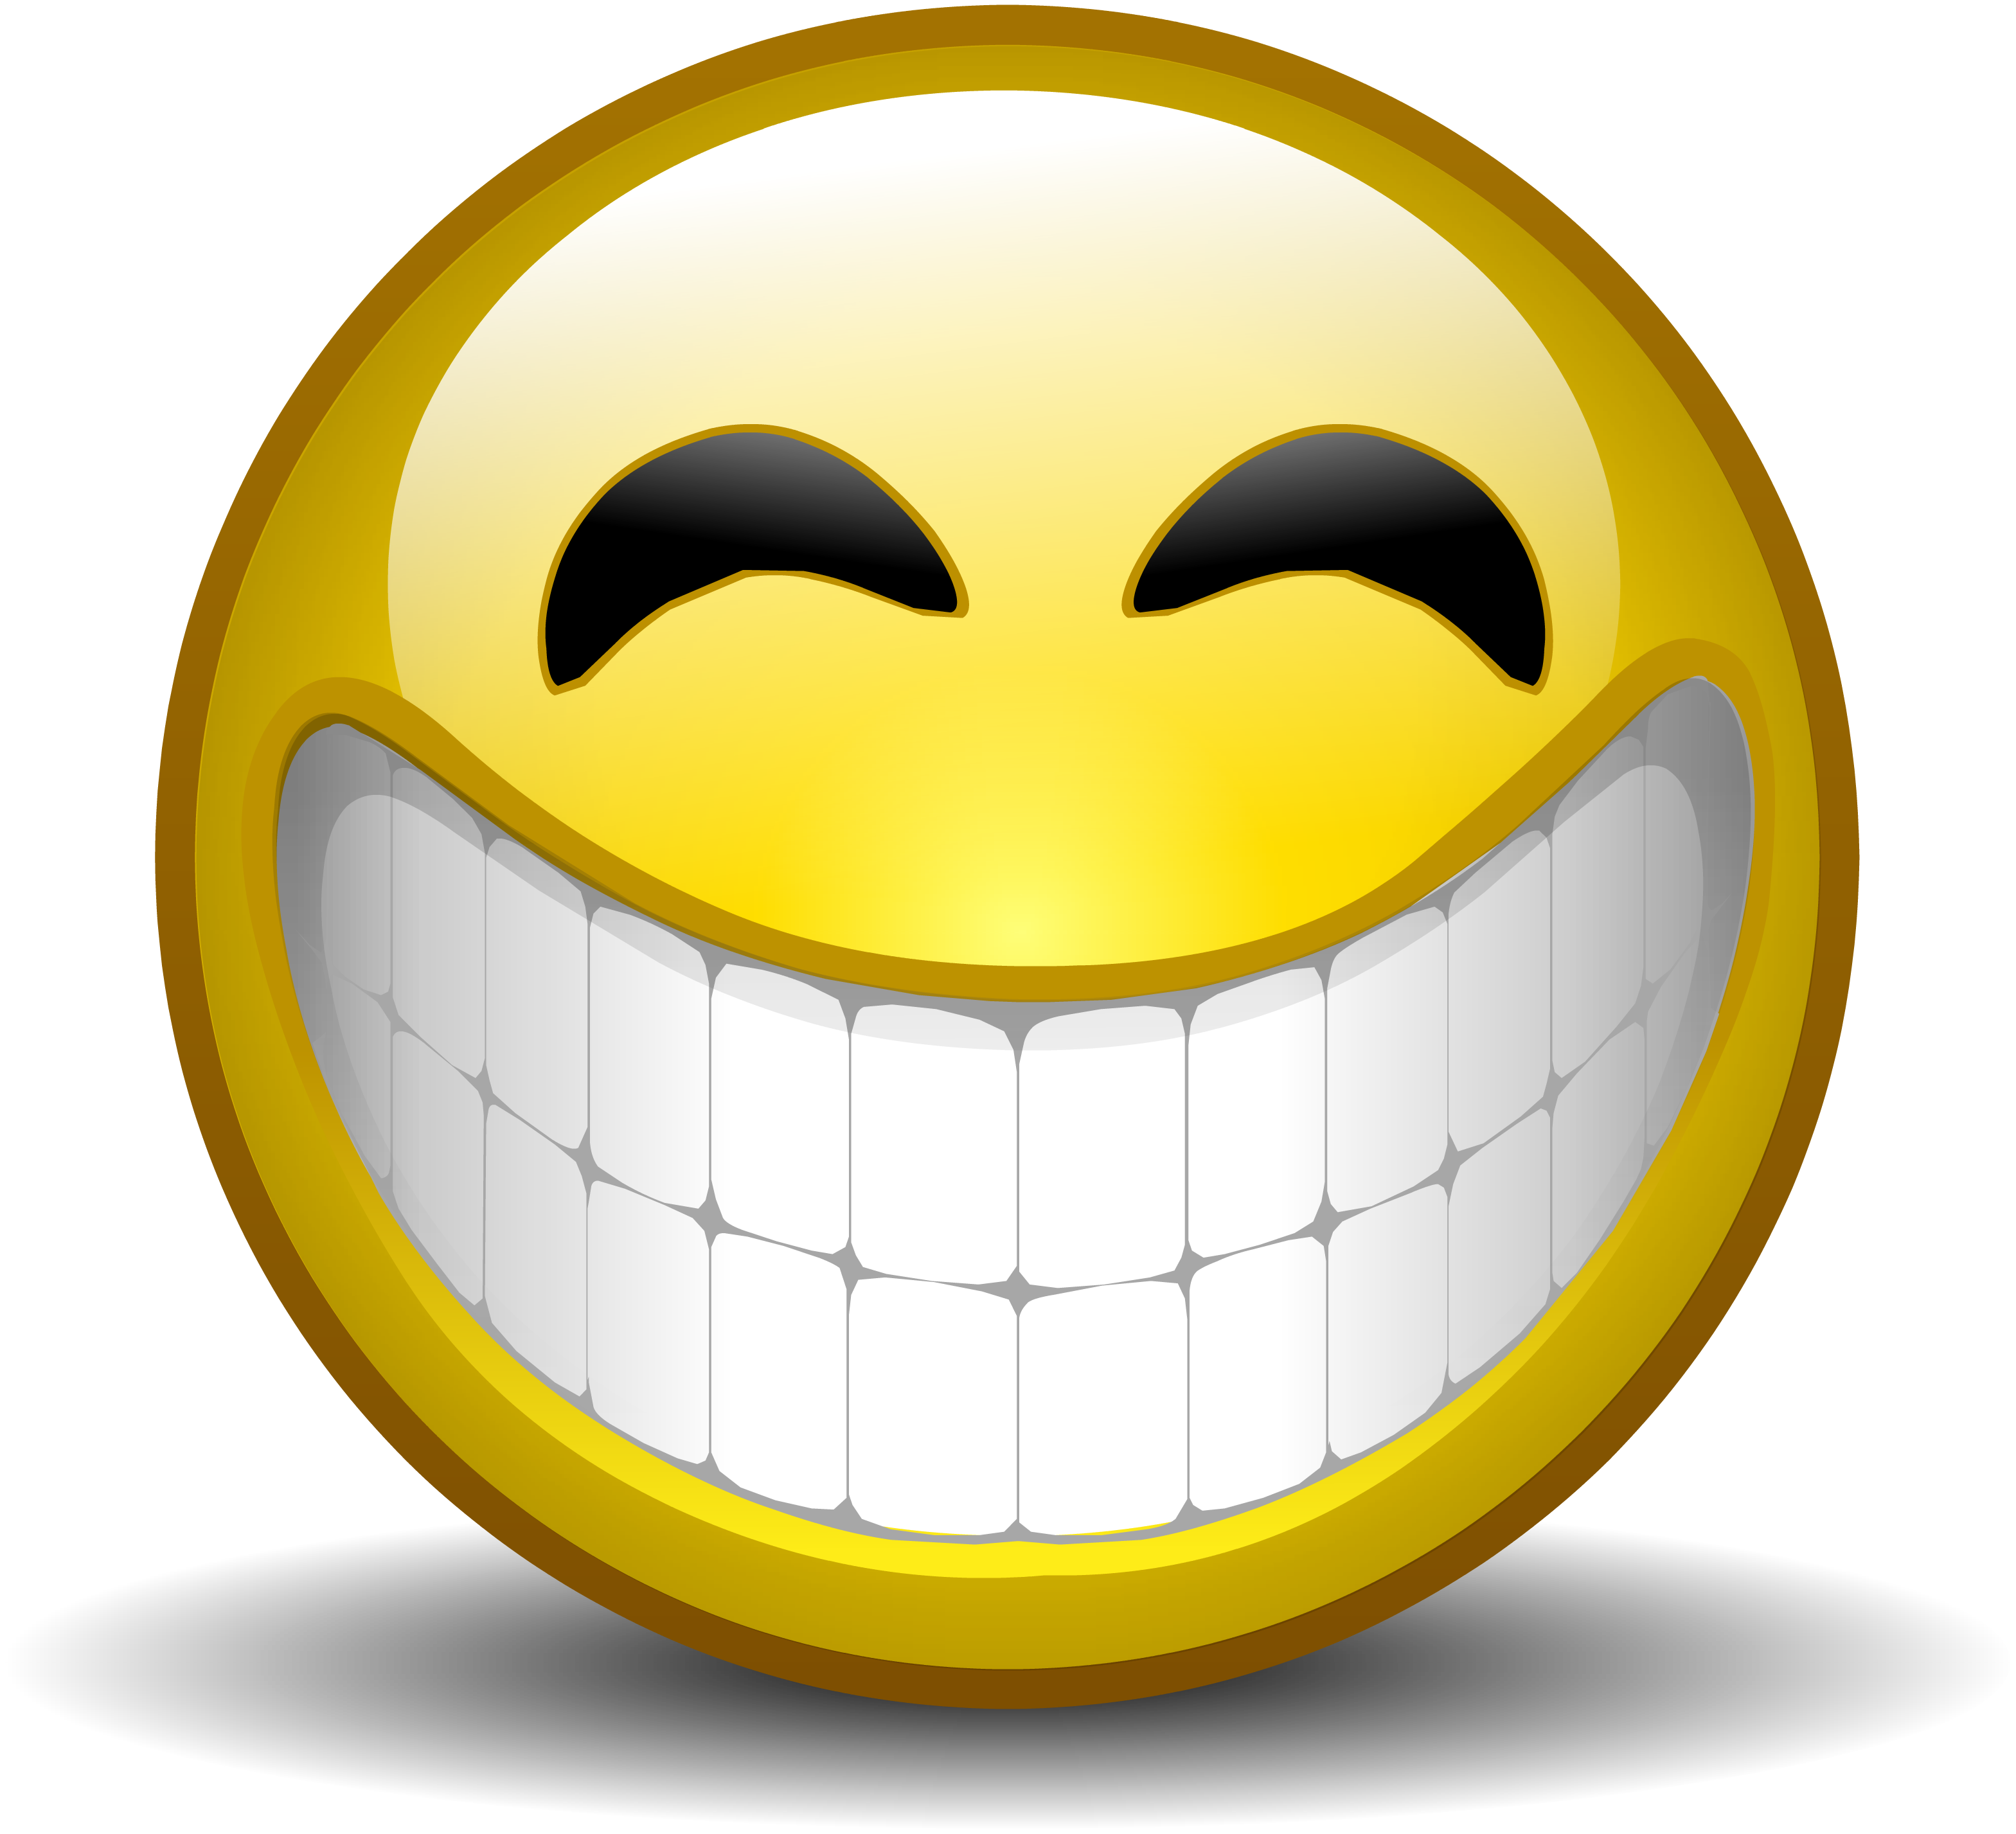 Smiley Image Free Download PNG HQ PNG Image